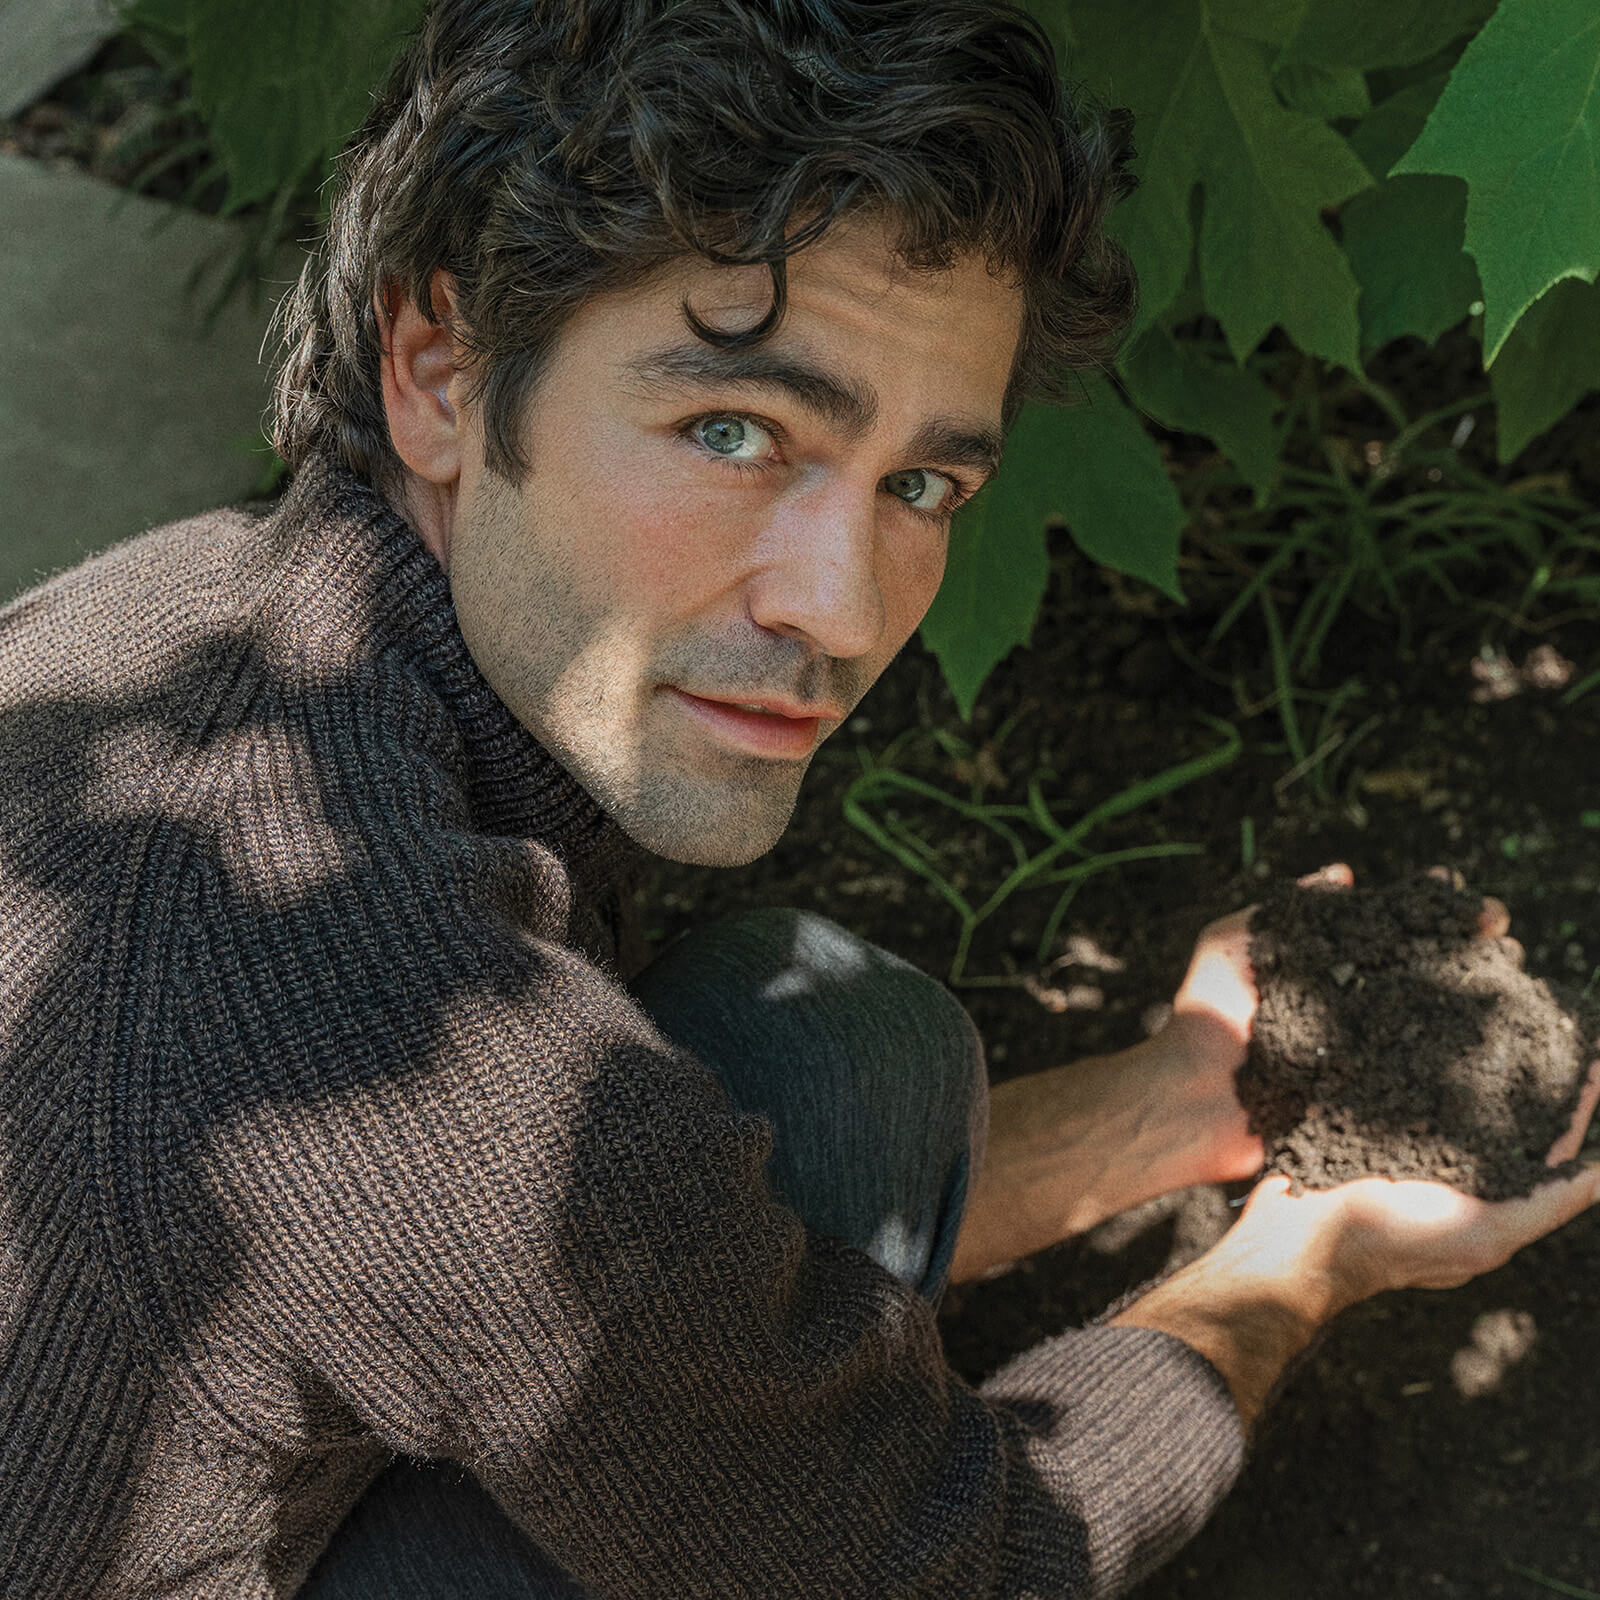 Adrian Grenier wearing icebreaker touching soil in his garden